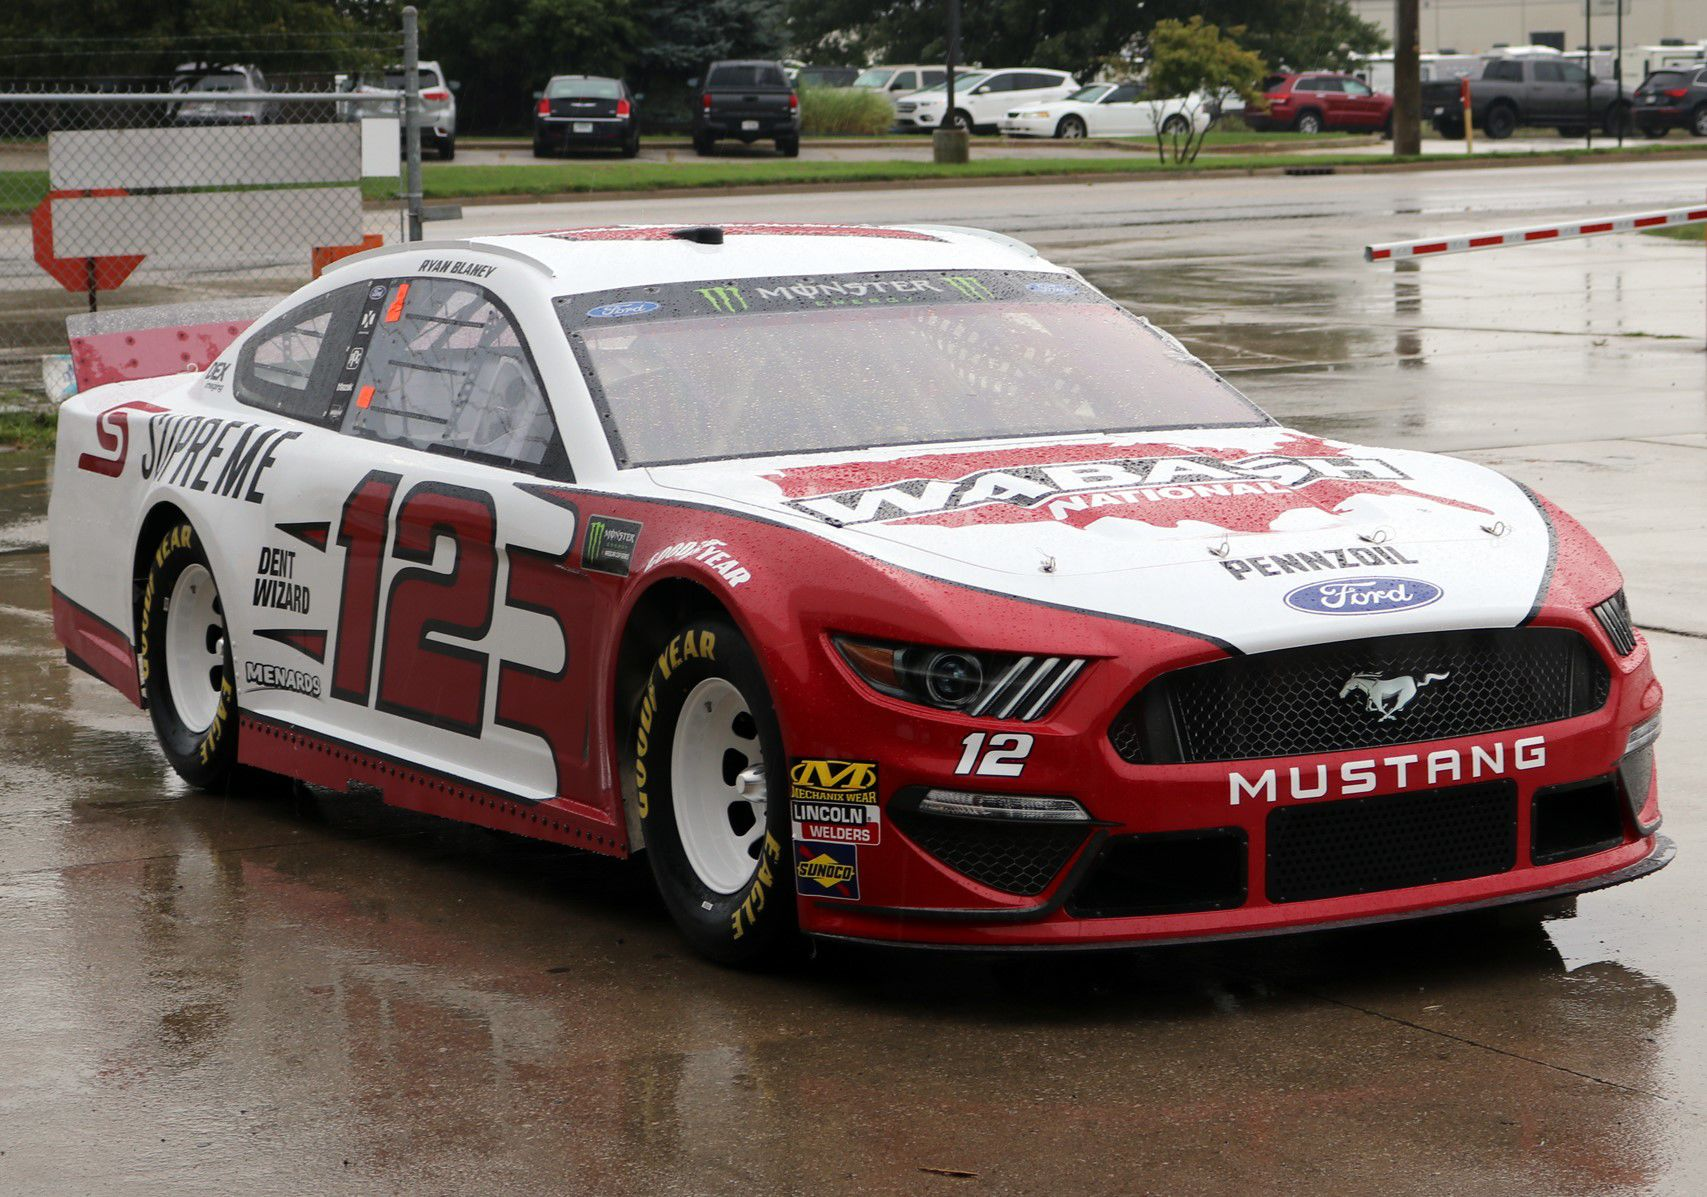 Vehicle Manufacturers In Nascar Nascar Car Makes Pit Stop At Wabash National In Goshen